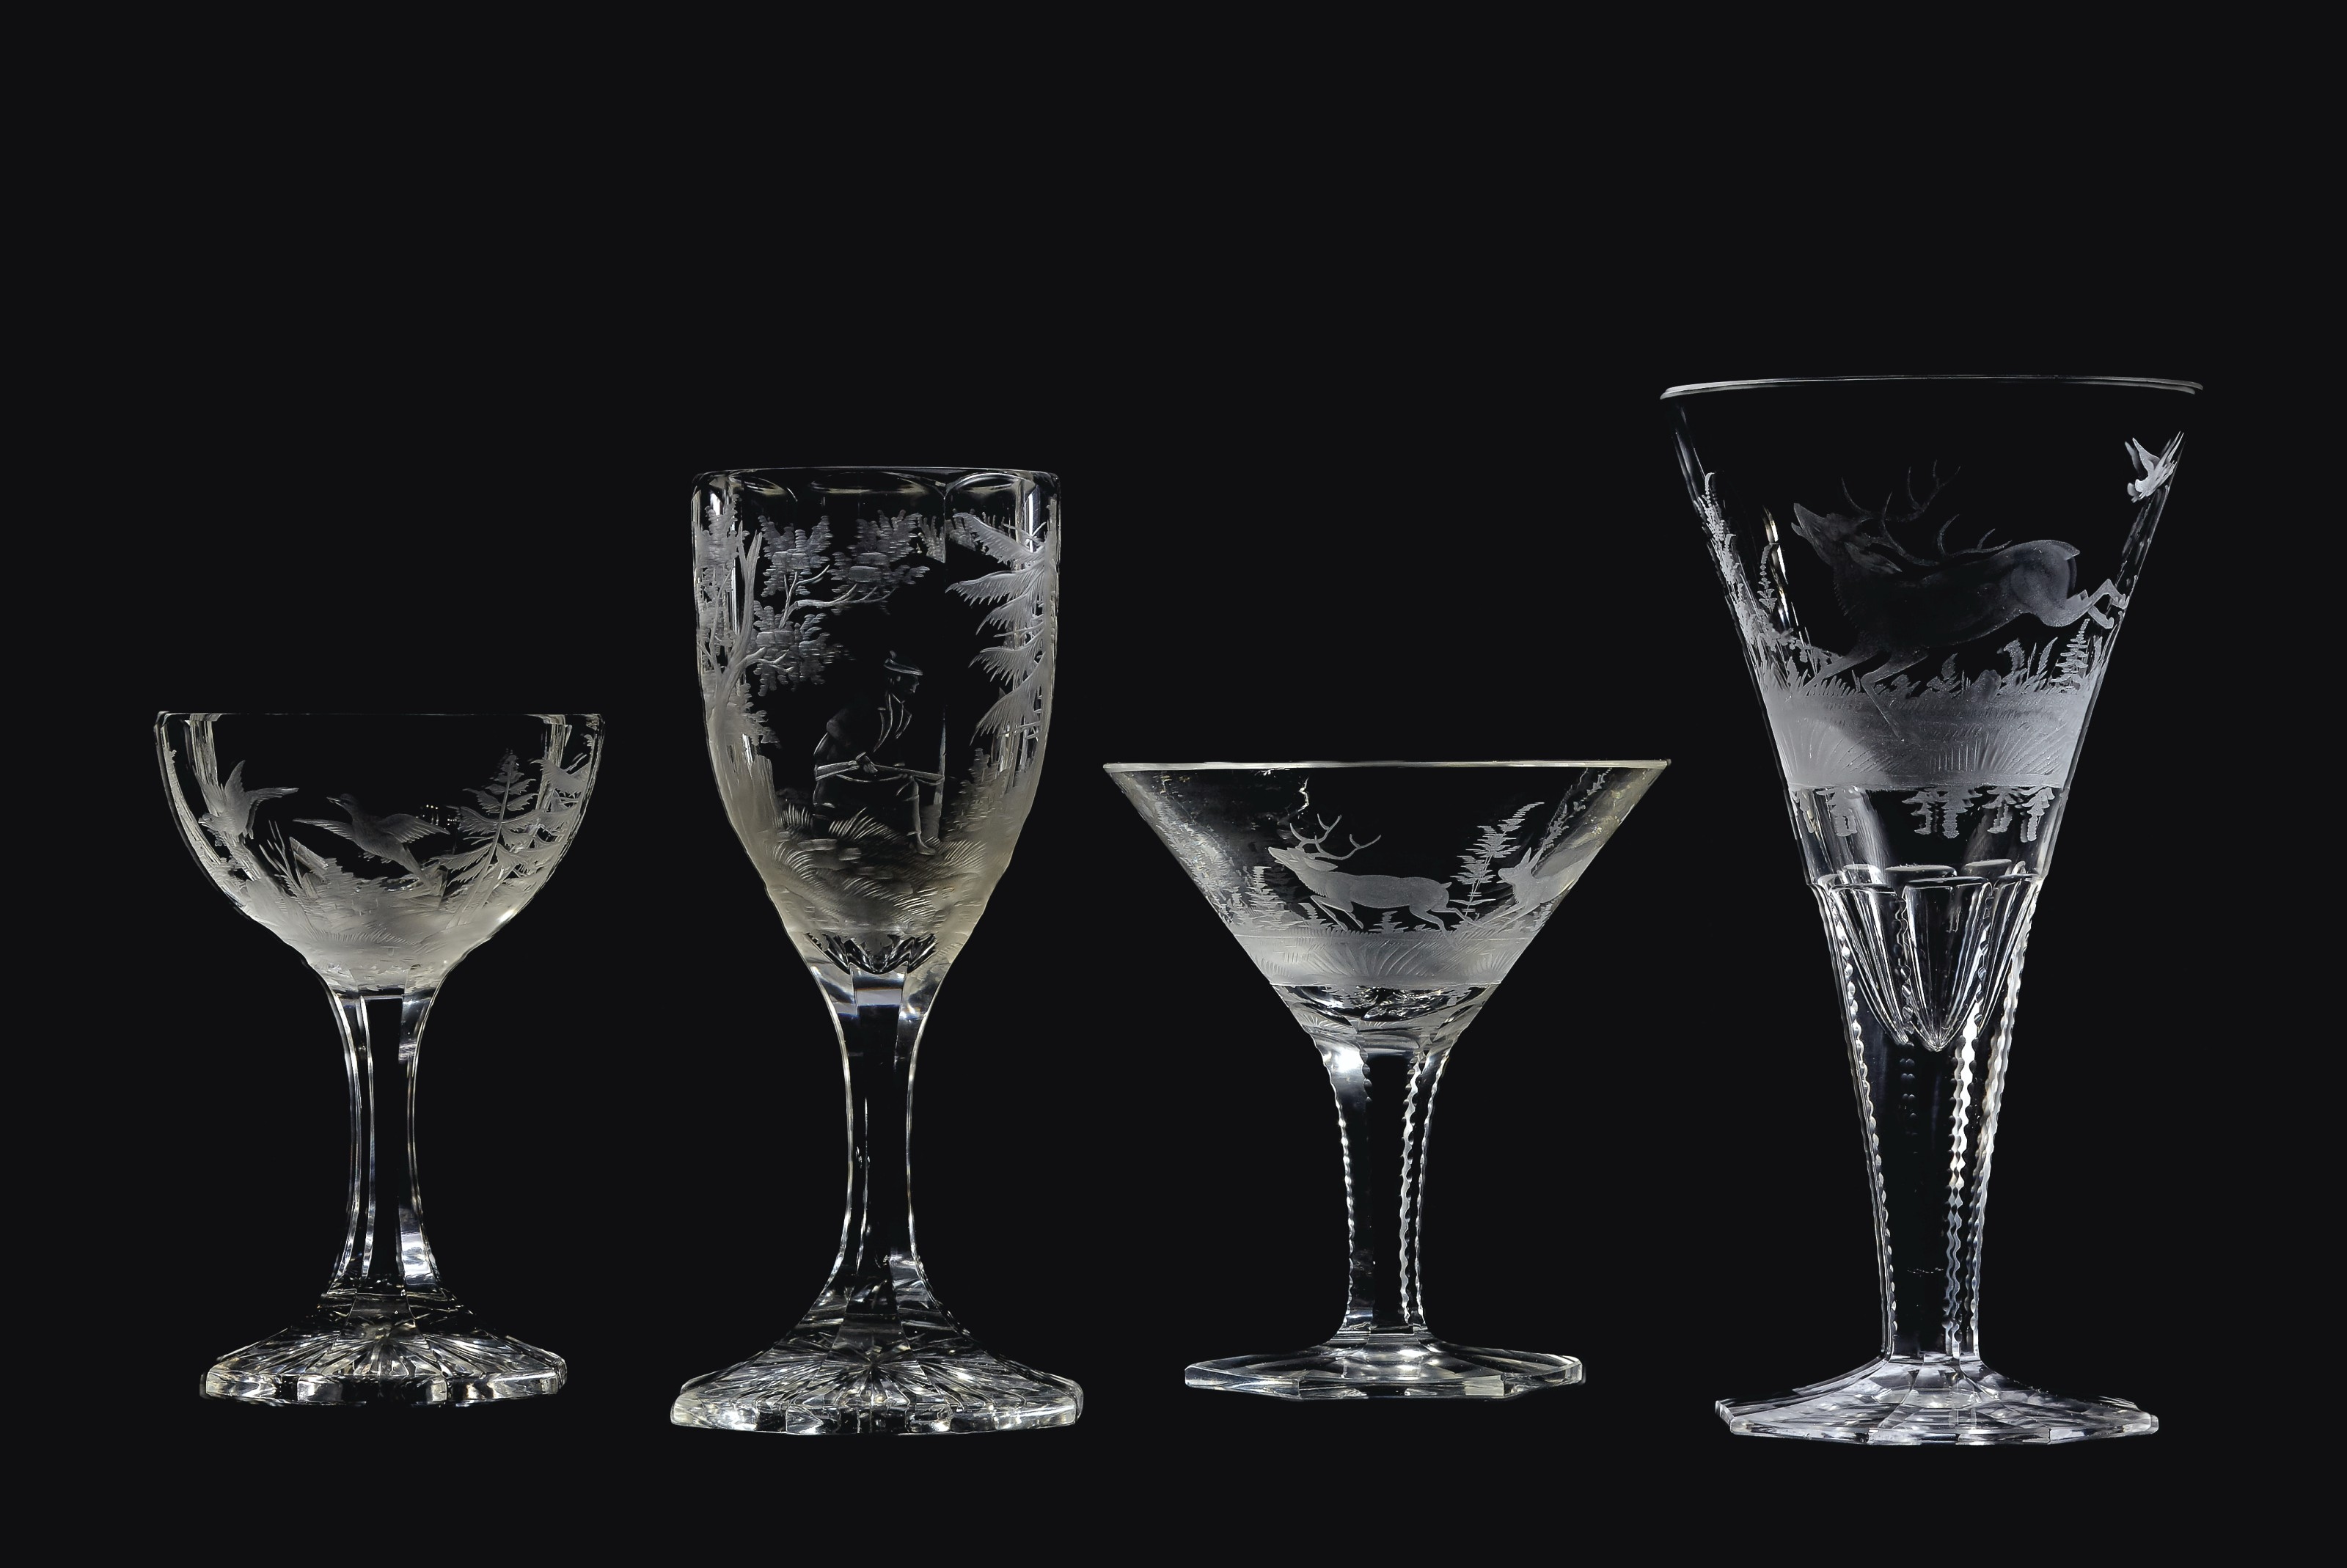 AN ASSEMBLED BOHEMIAN ENGRAVED AND CUT-GLASS PART STEMWARE SERVICE